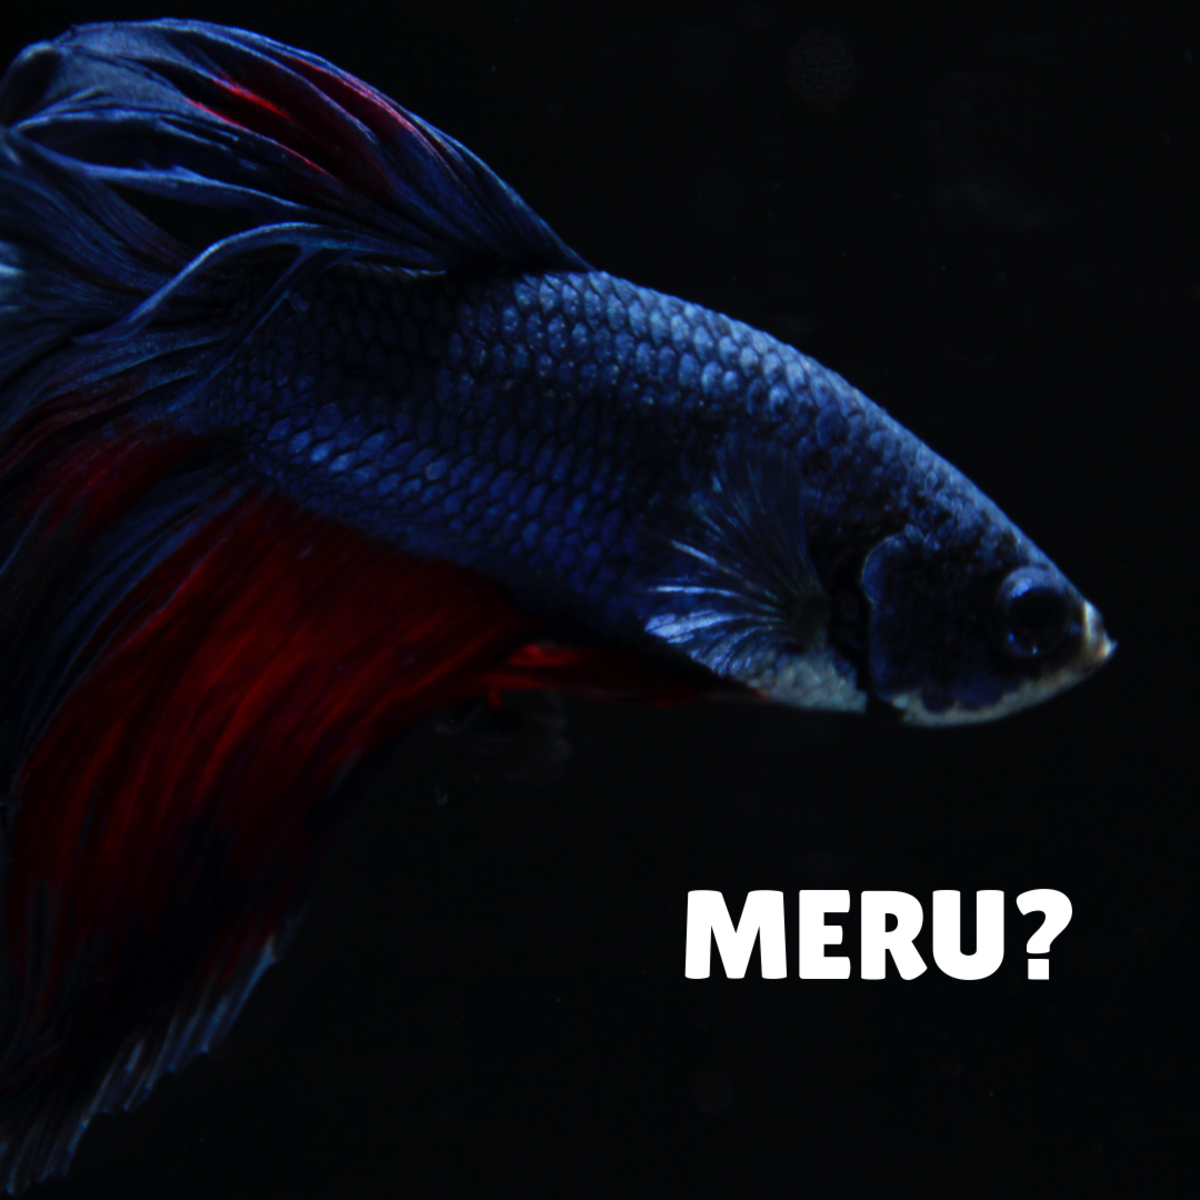 Is your betta fish a Meru?